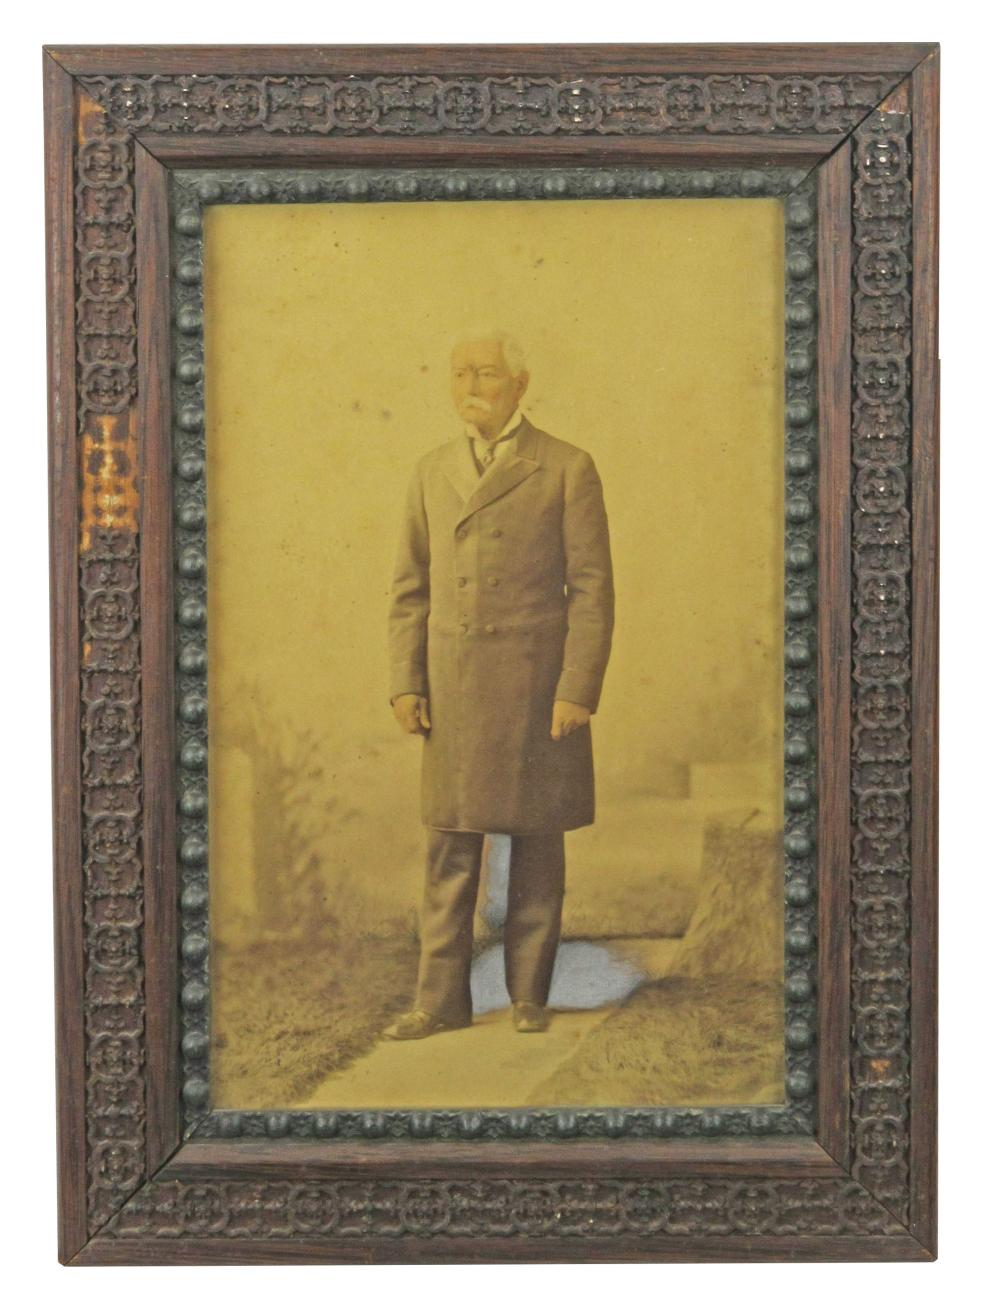 Large P.G.T. Beauregard Photograph with Hand-Painted Details